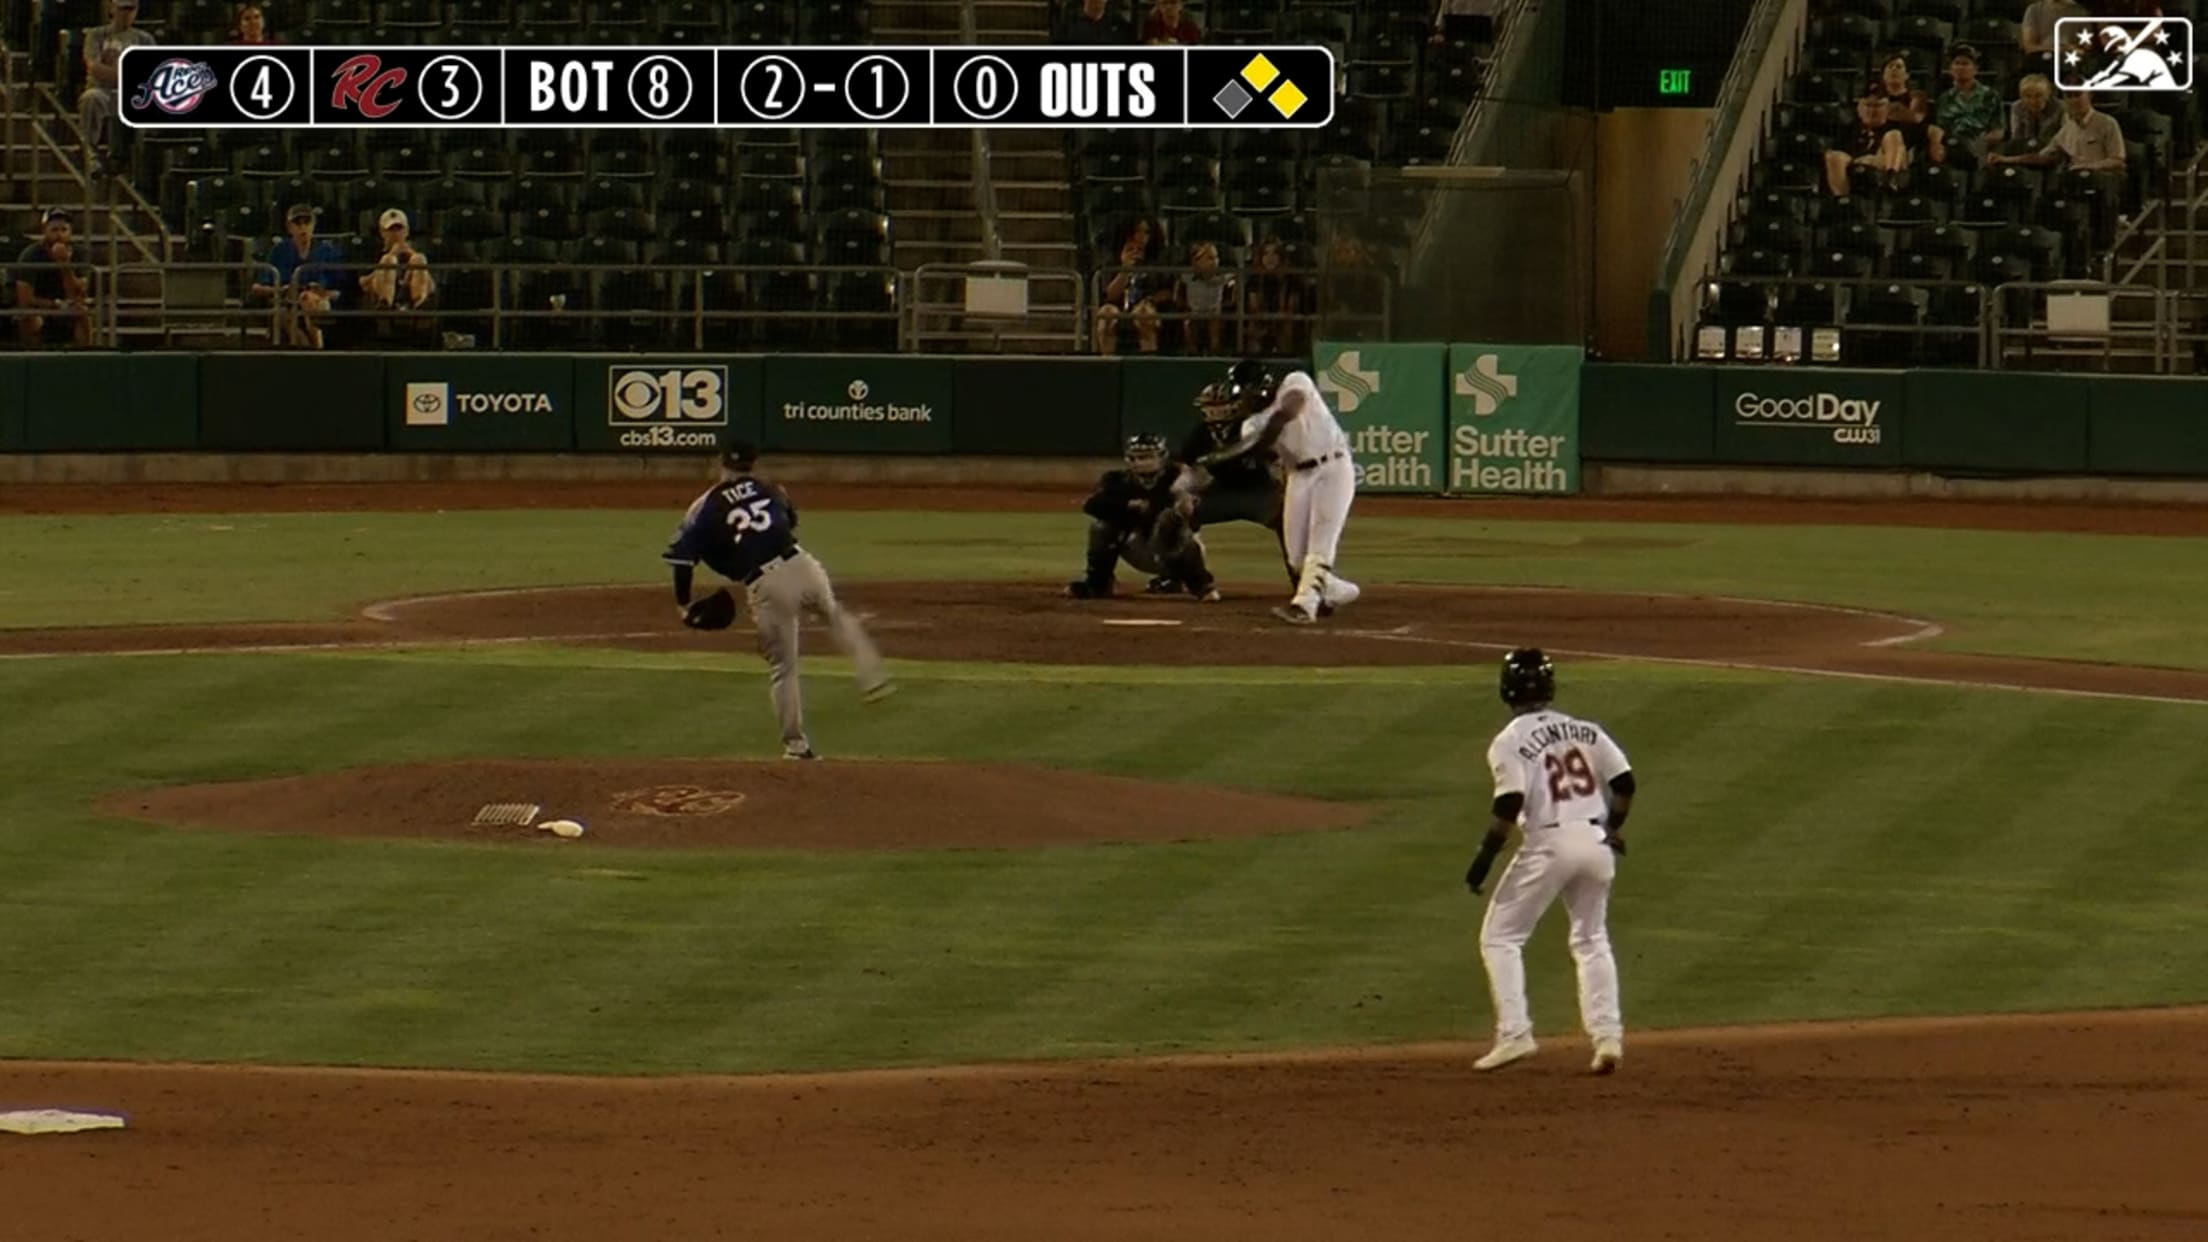 Ramos doubles for 4th hit of game